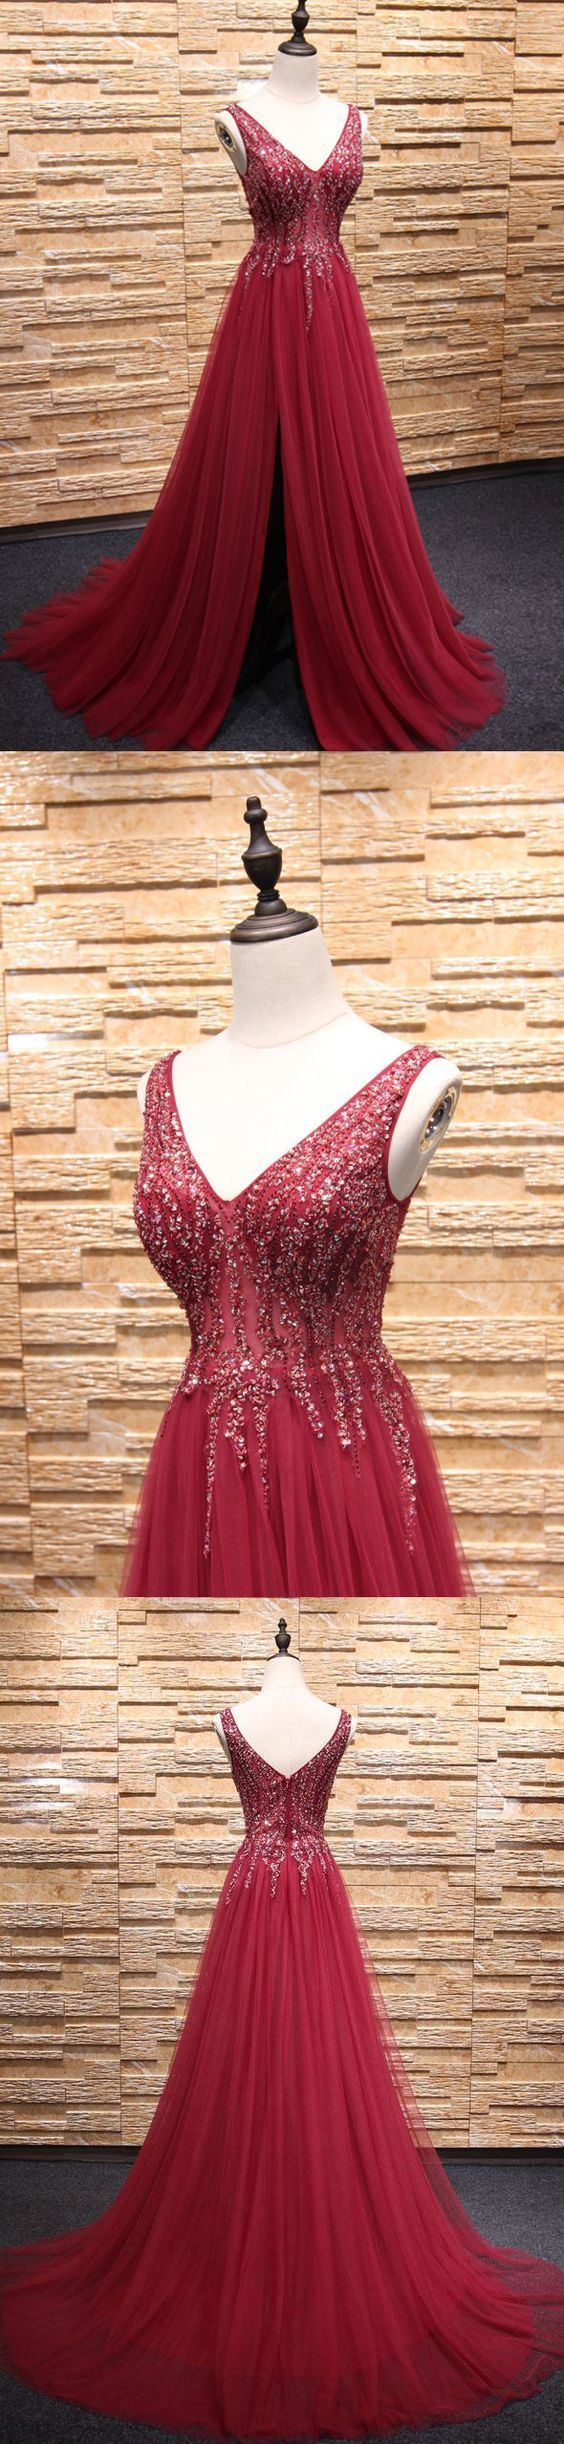 Red Lace Appliques Plunge V Sleeveless Floor Length Tulle A-Line Formal Dress,